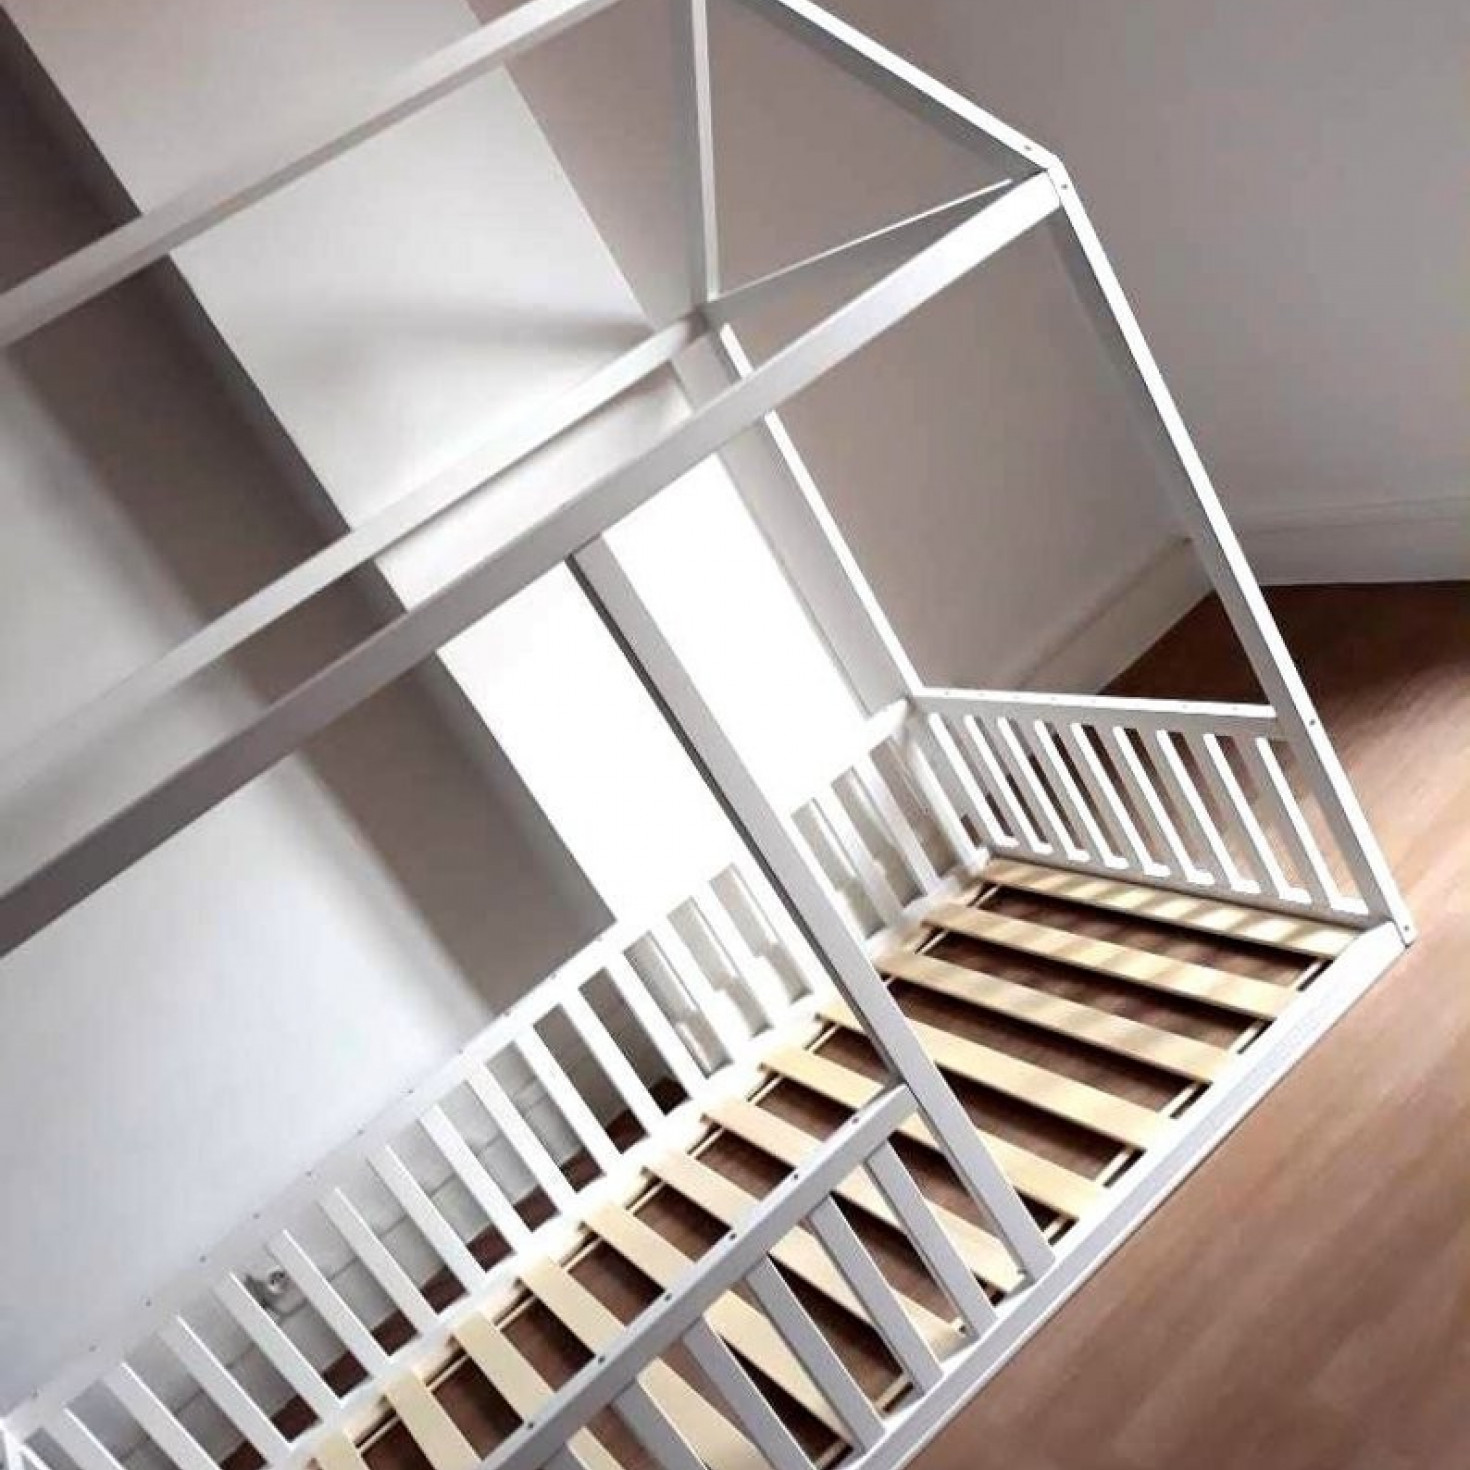 A toddler bed frame with rails all around